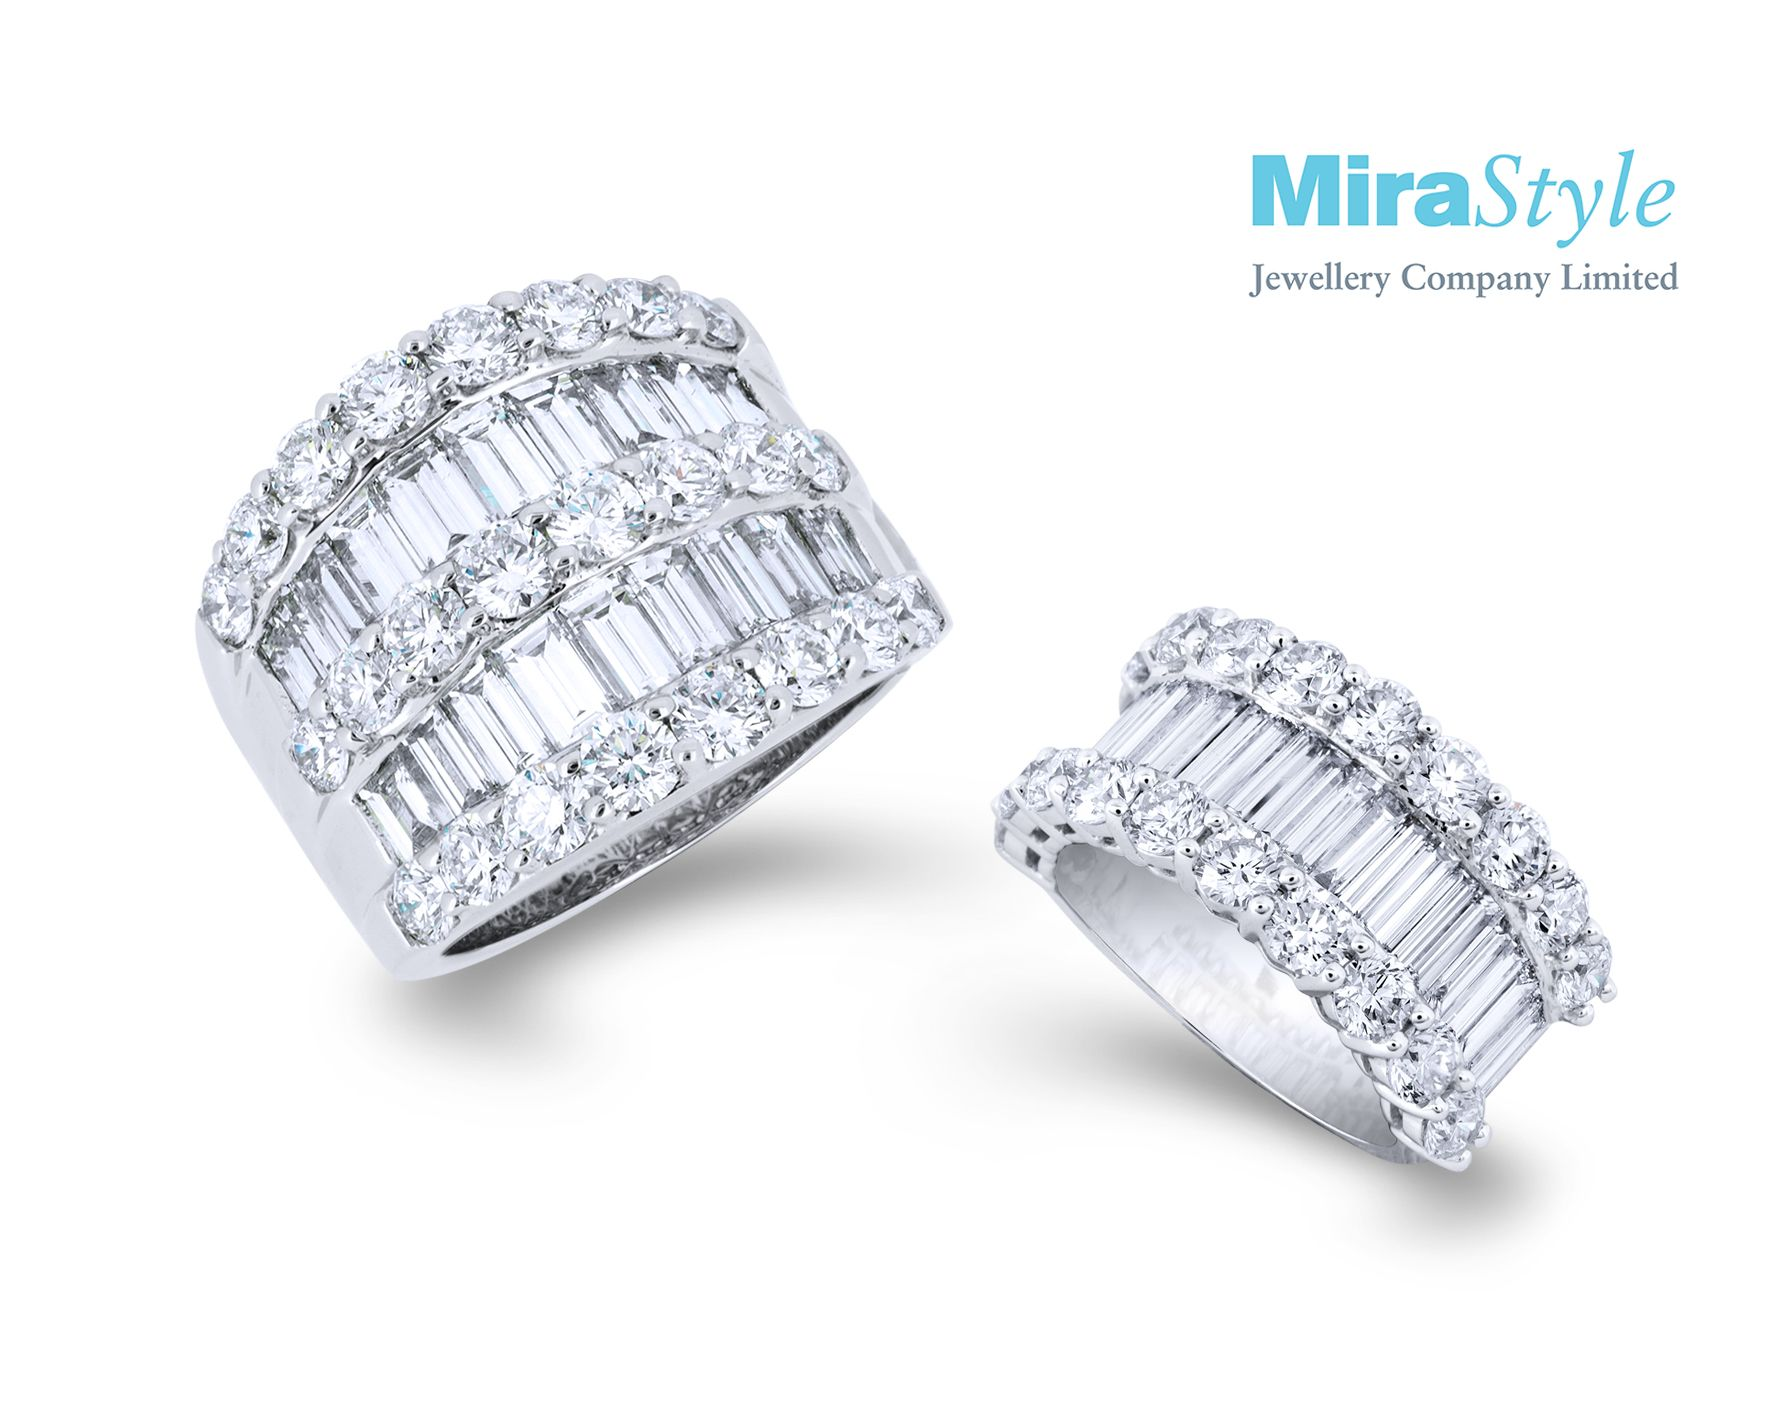 Mira Style Jewellery Co. Ltd. #Booth No.: 1A713 #Classic #Simple ...